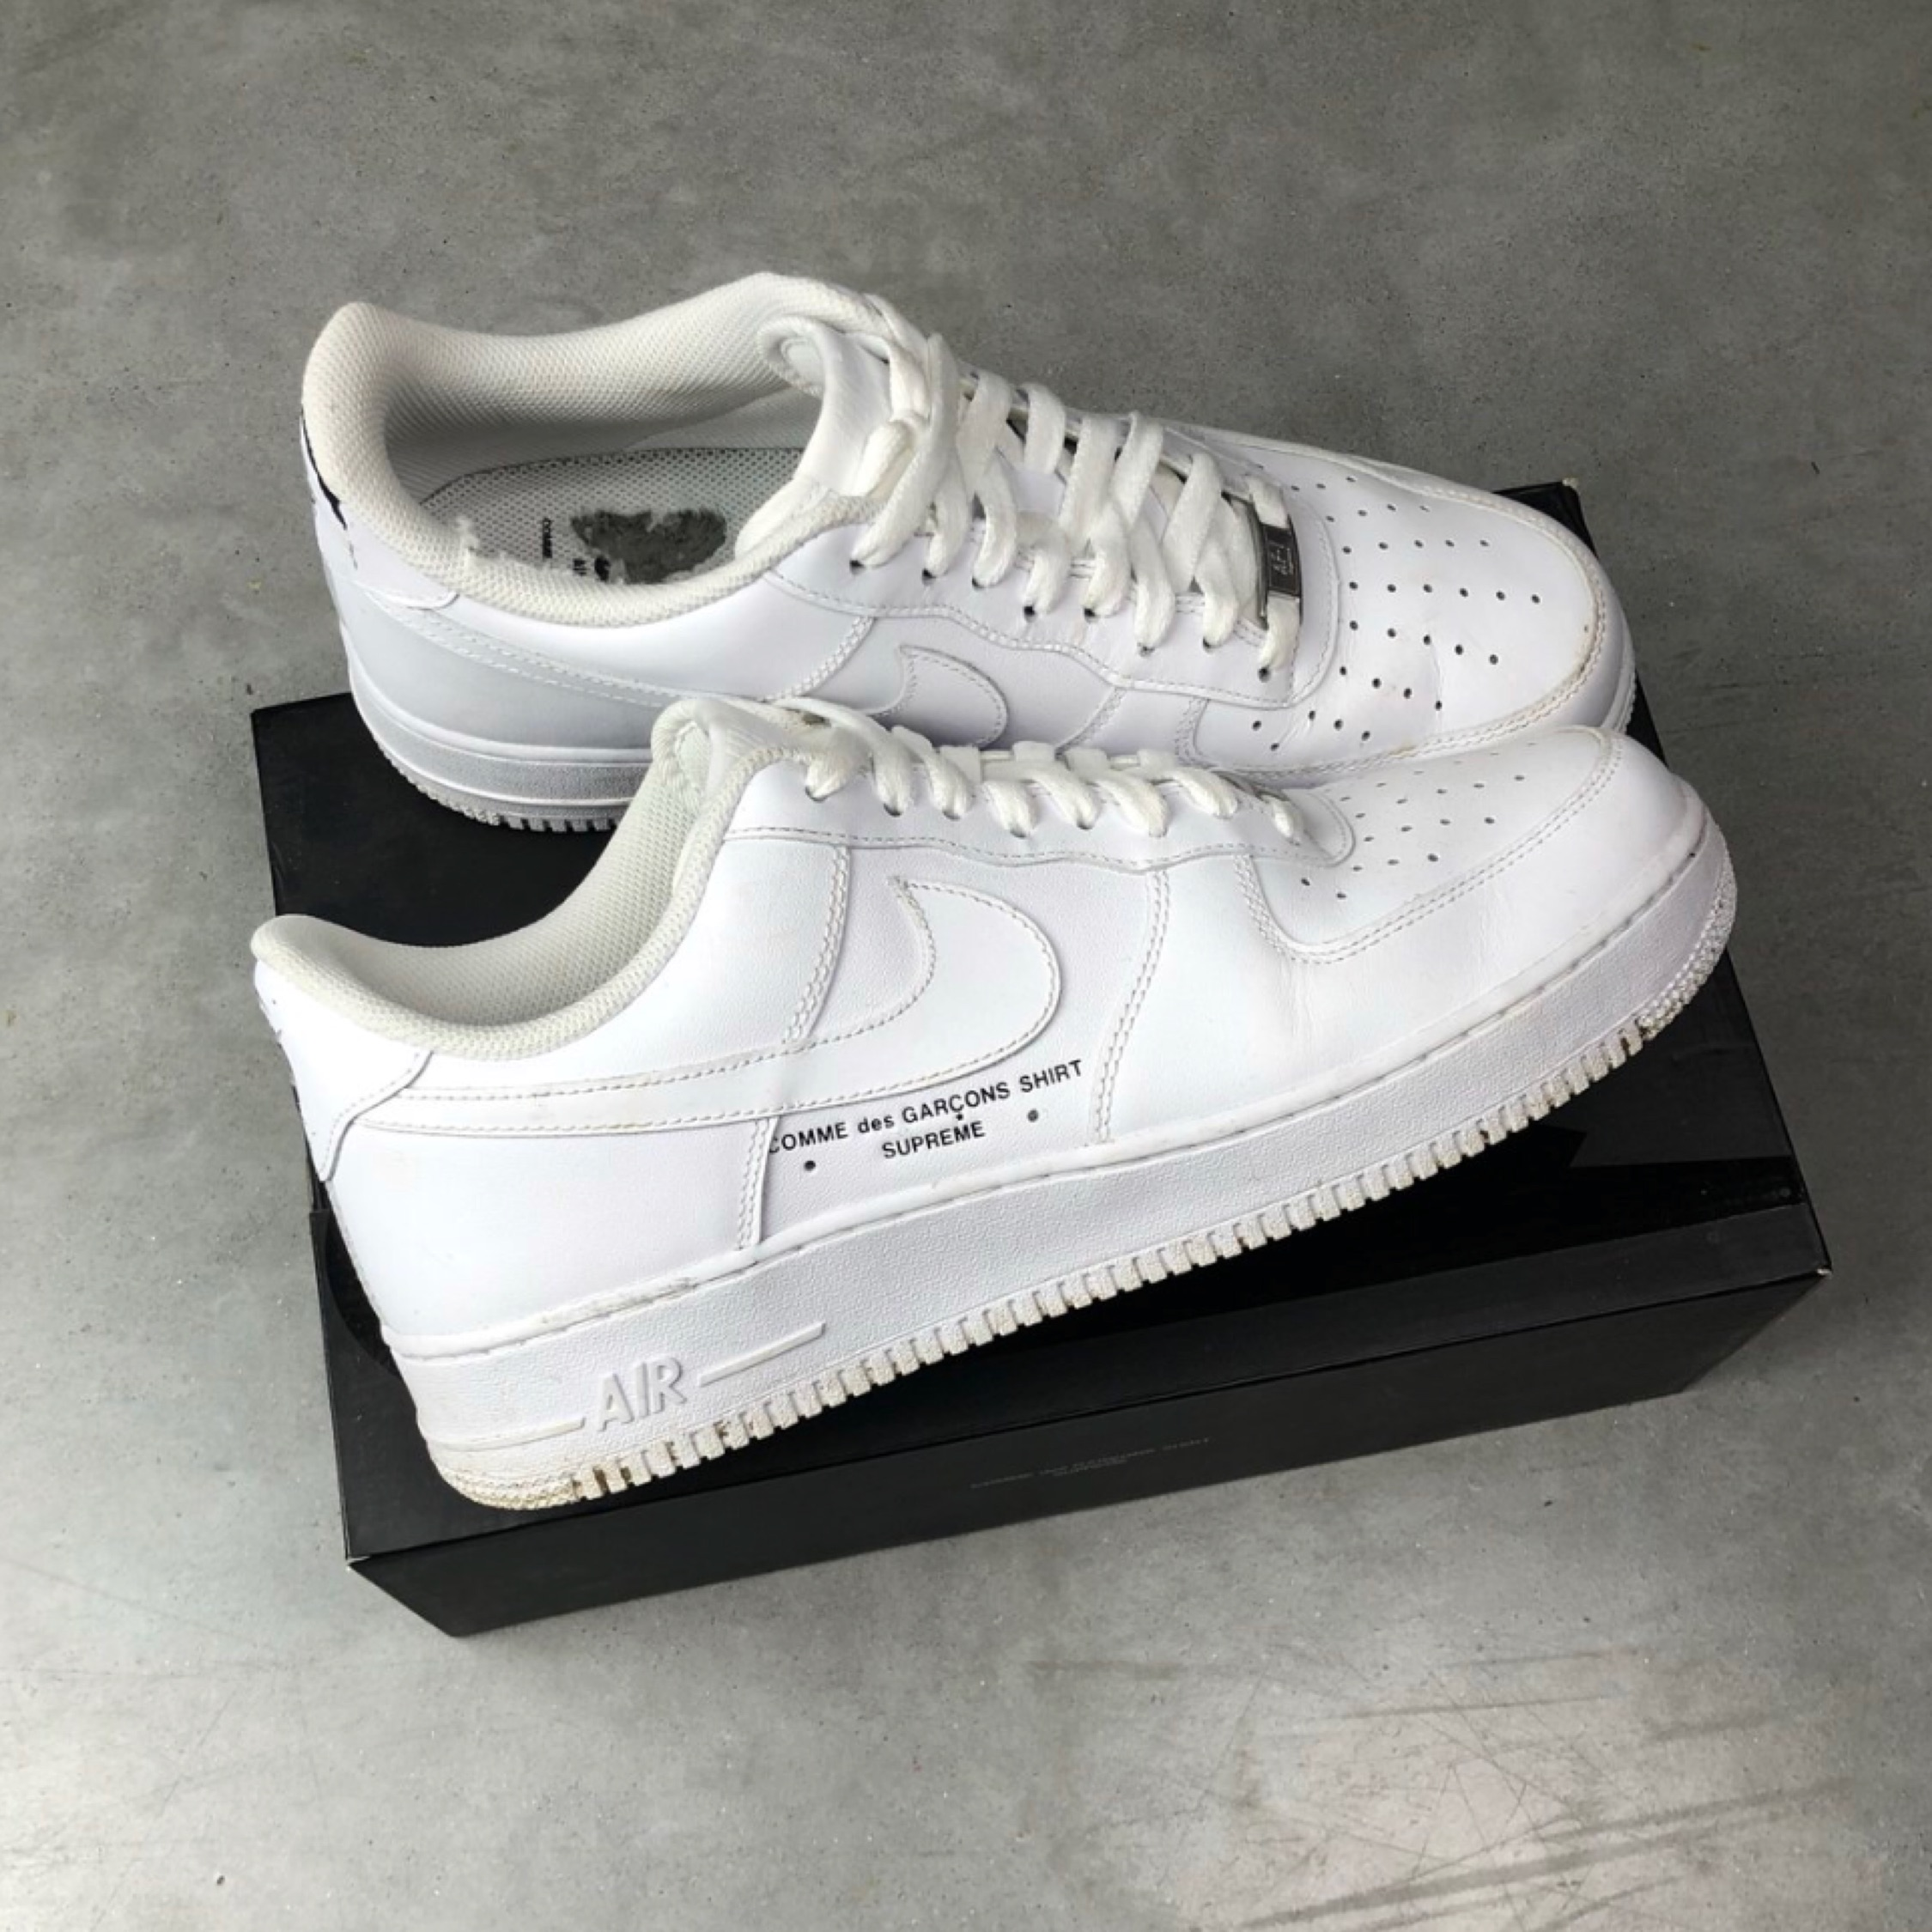 best service 281e1 21e1a Supreme X Cdg X Nike Af1 Collab Factory Flawed Uk9